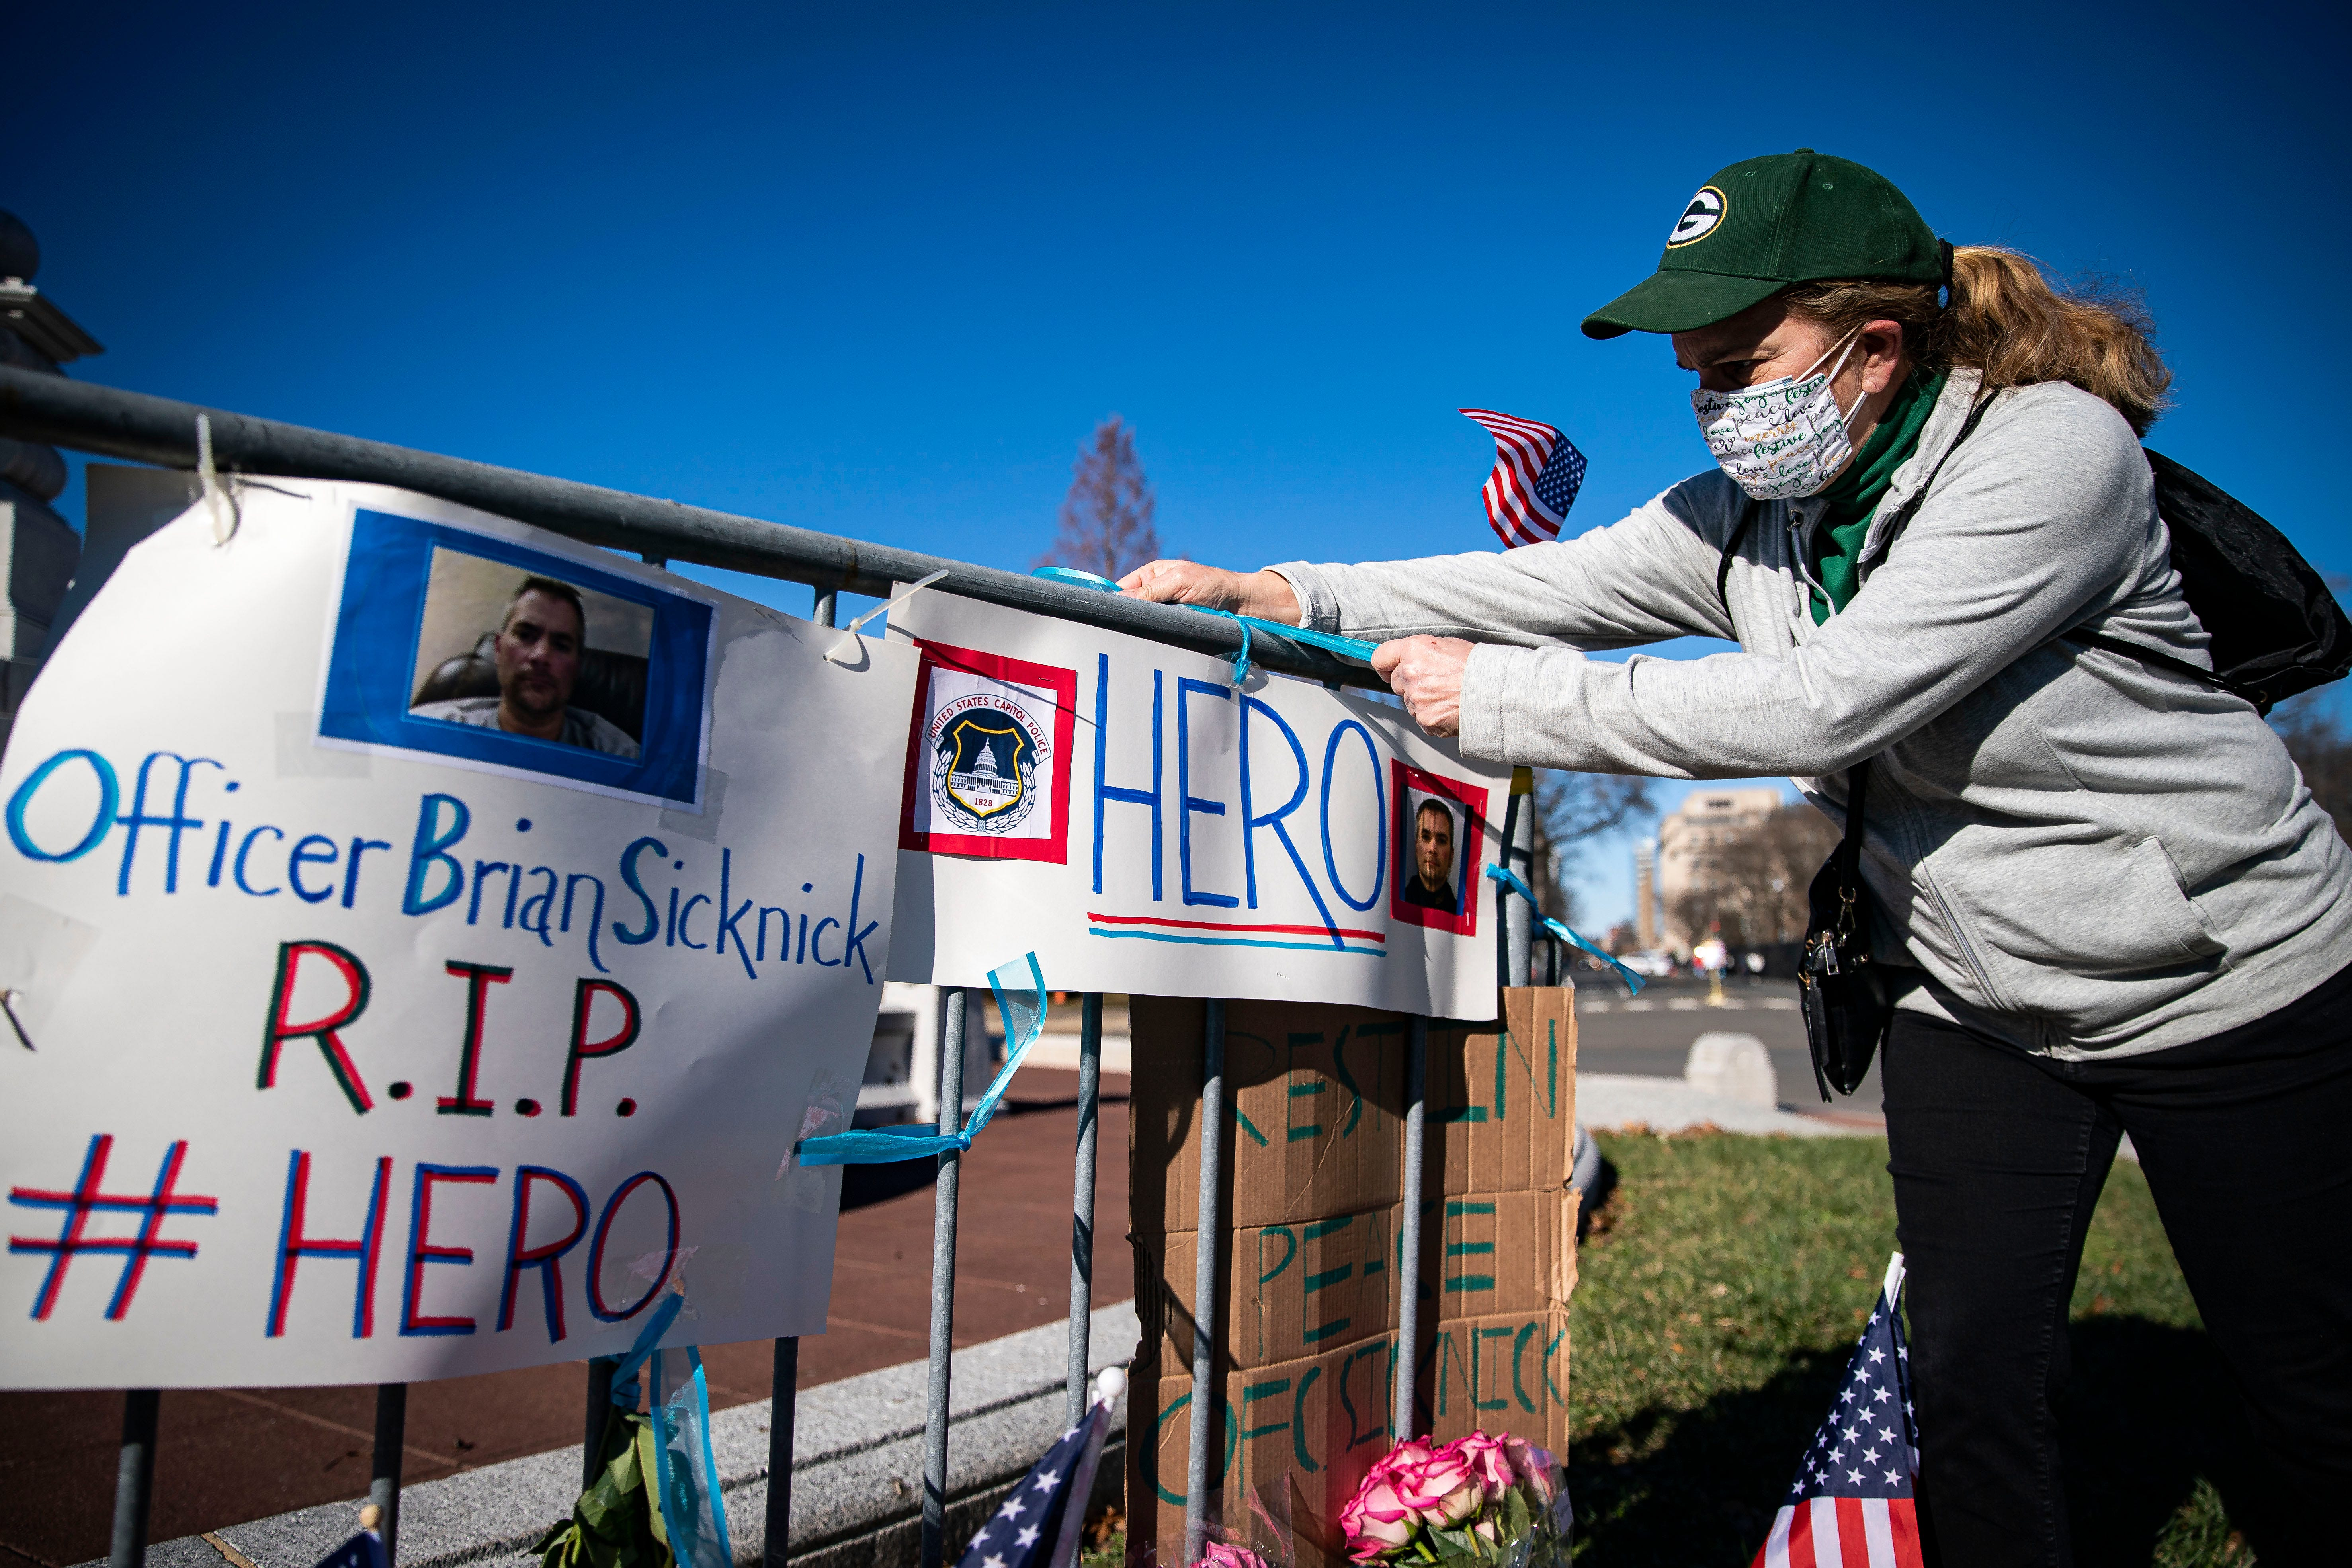 Politics updates: White House lowers flag 3 days after Capitol Police officer Sicknick dies